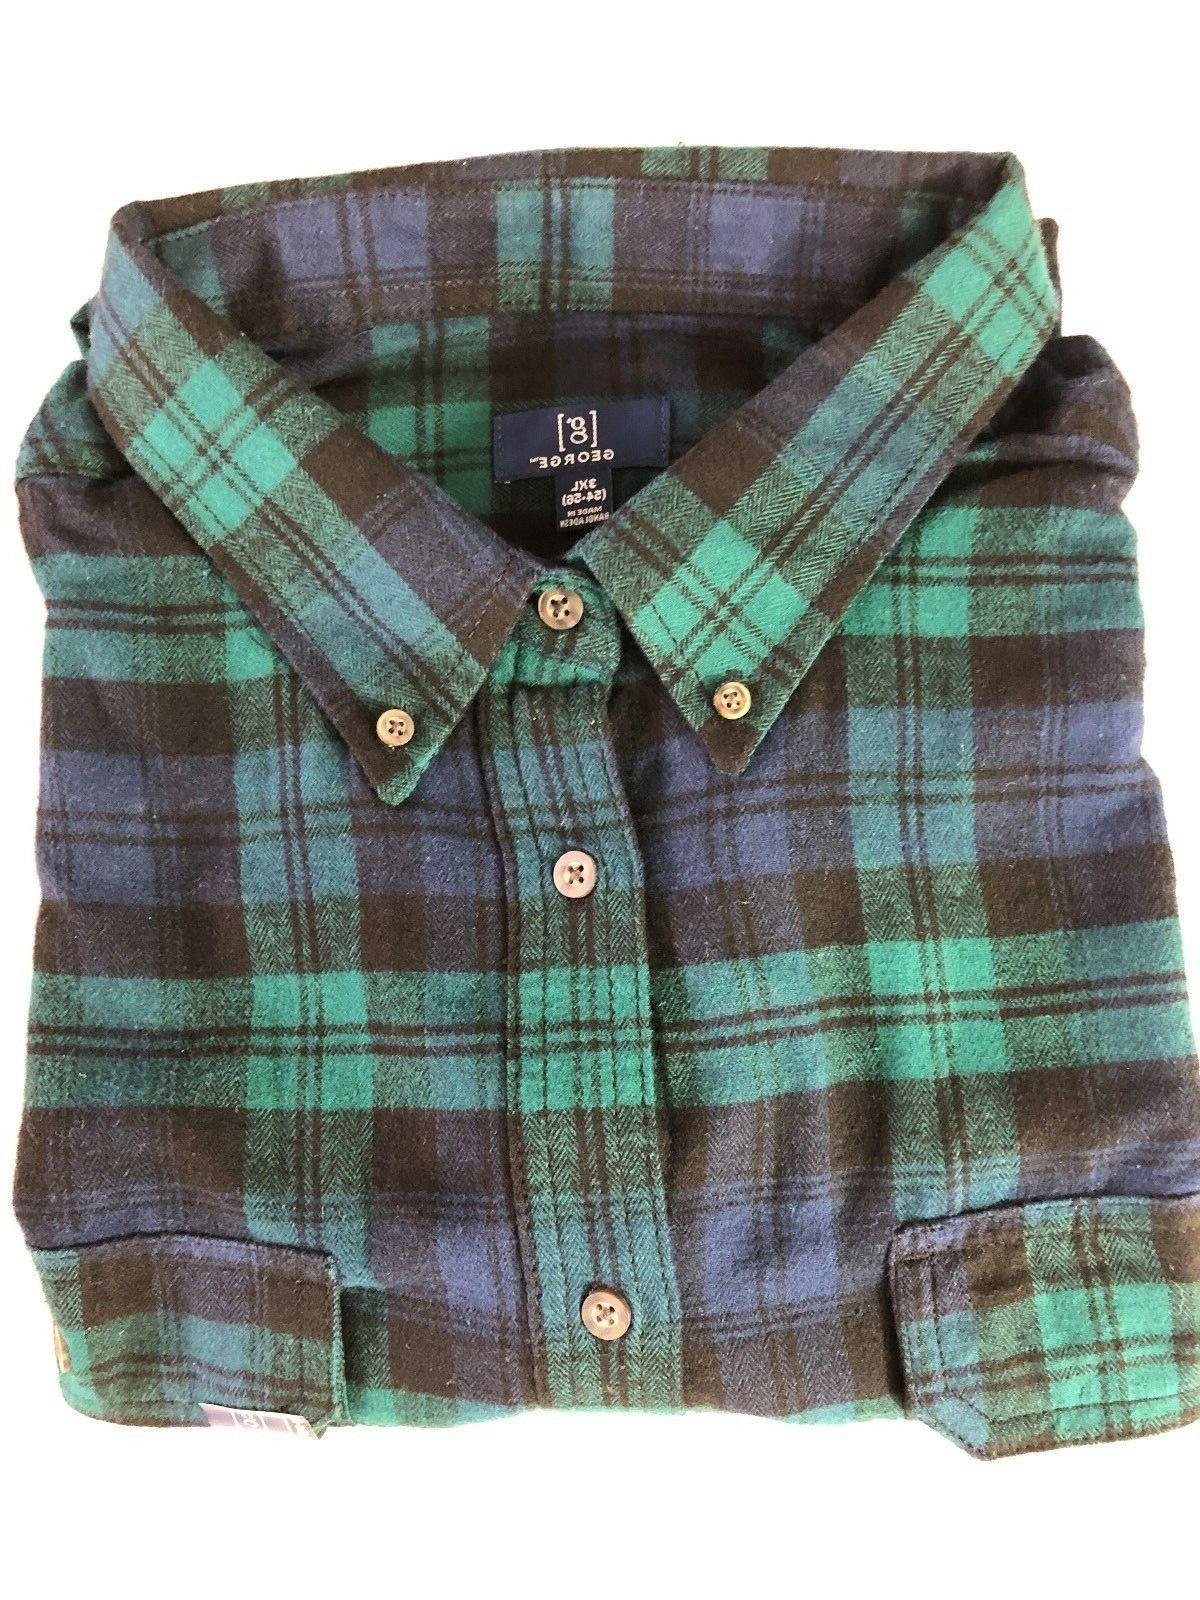 NEW GEORGE 3XL PLAID FLANNEL SHIRT BUTTON DOWN COTTON NAVY/GREEN